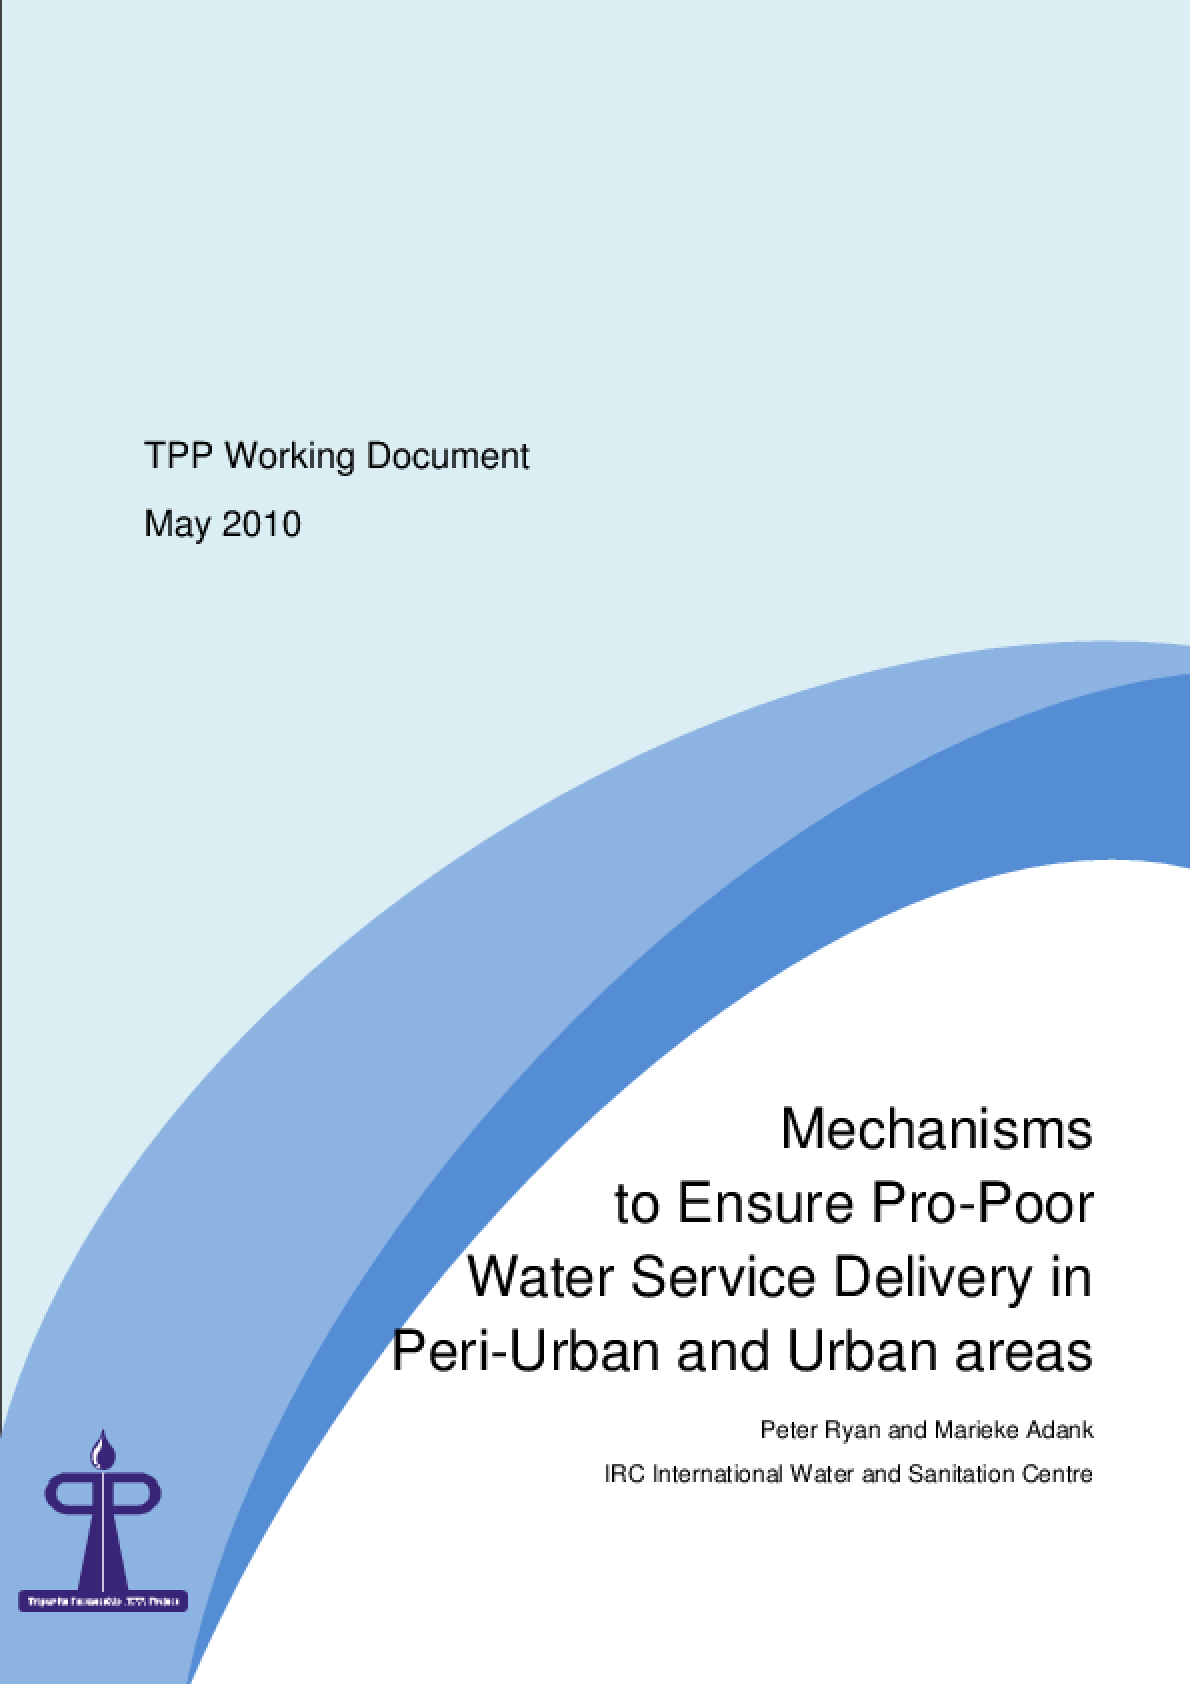 Mechanisms to Ensure Pro-Poor Water Service Delivery in Peri-Urban and Urban areas